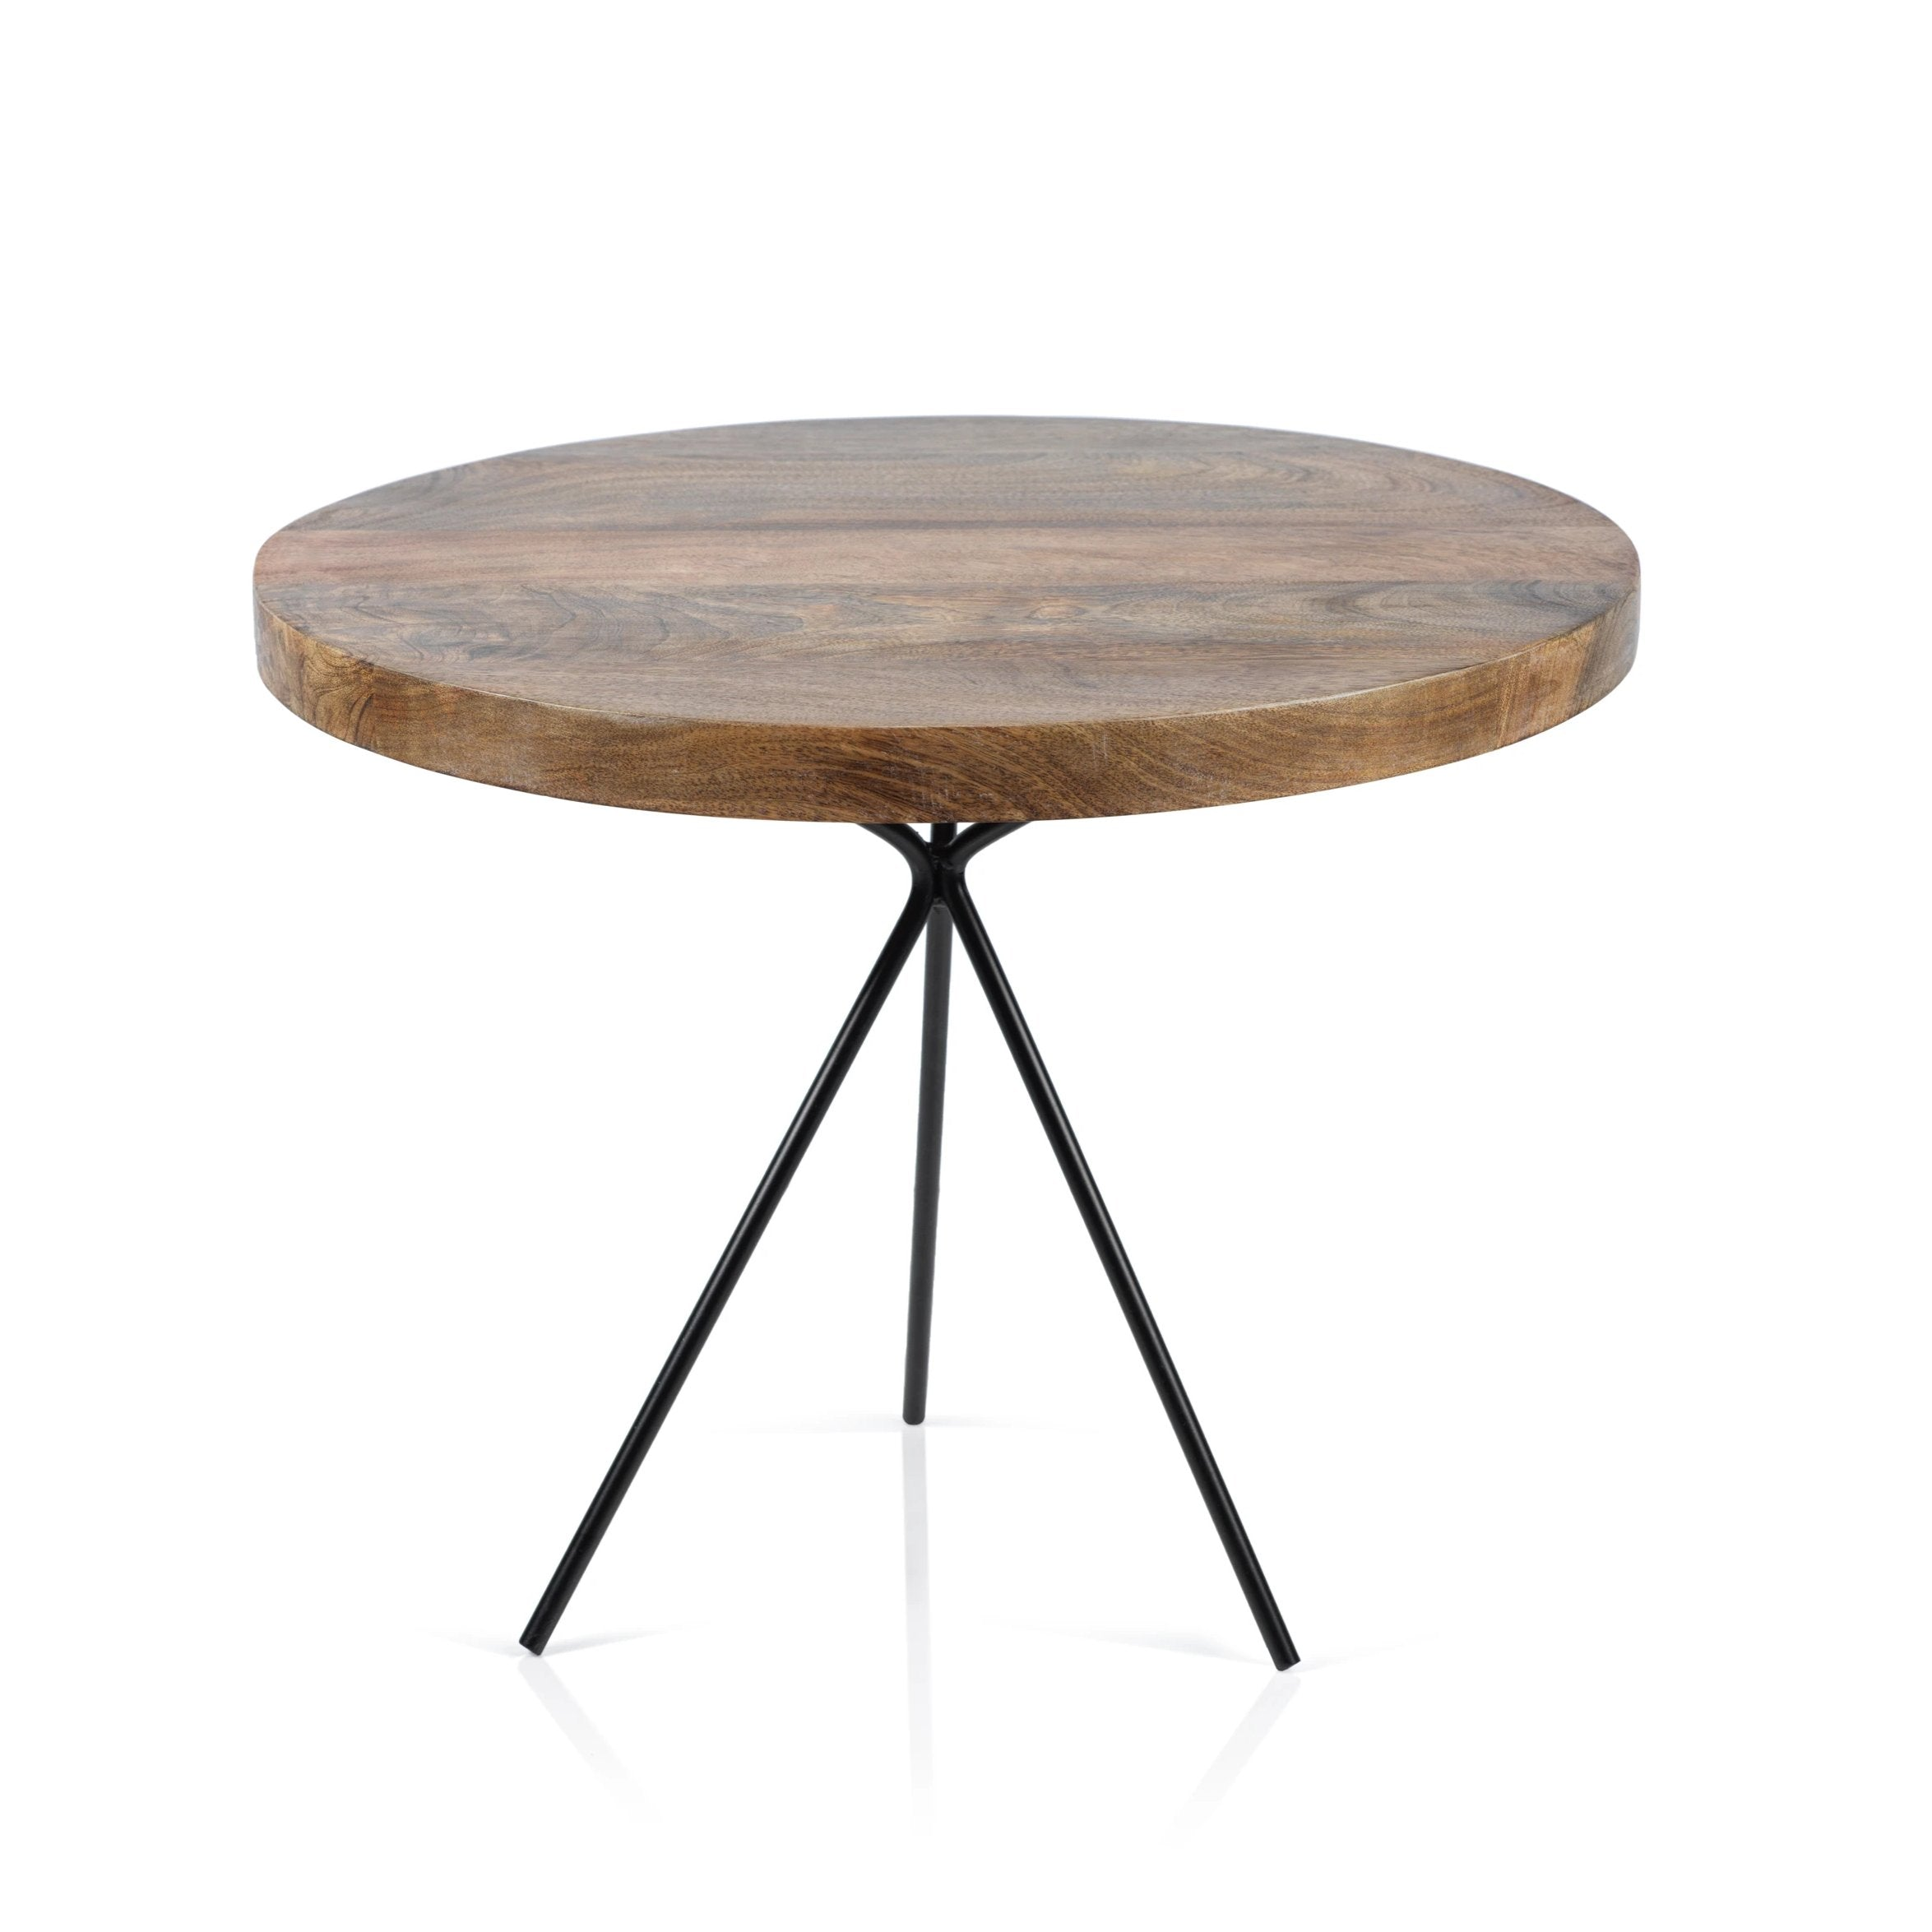 Heritage Mango Tables - CARLYLE AVENUE